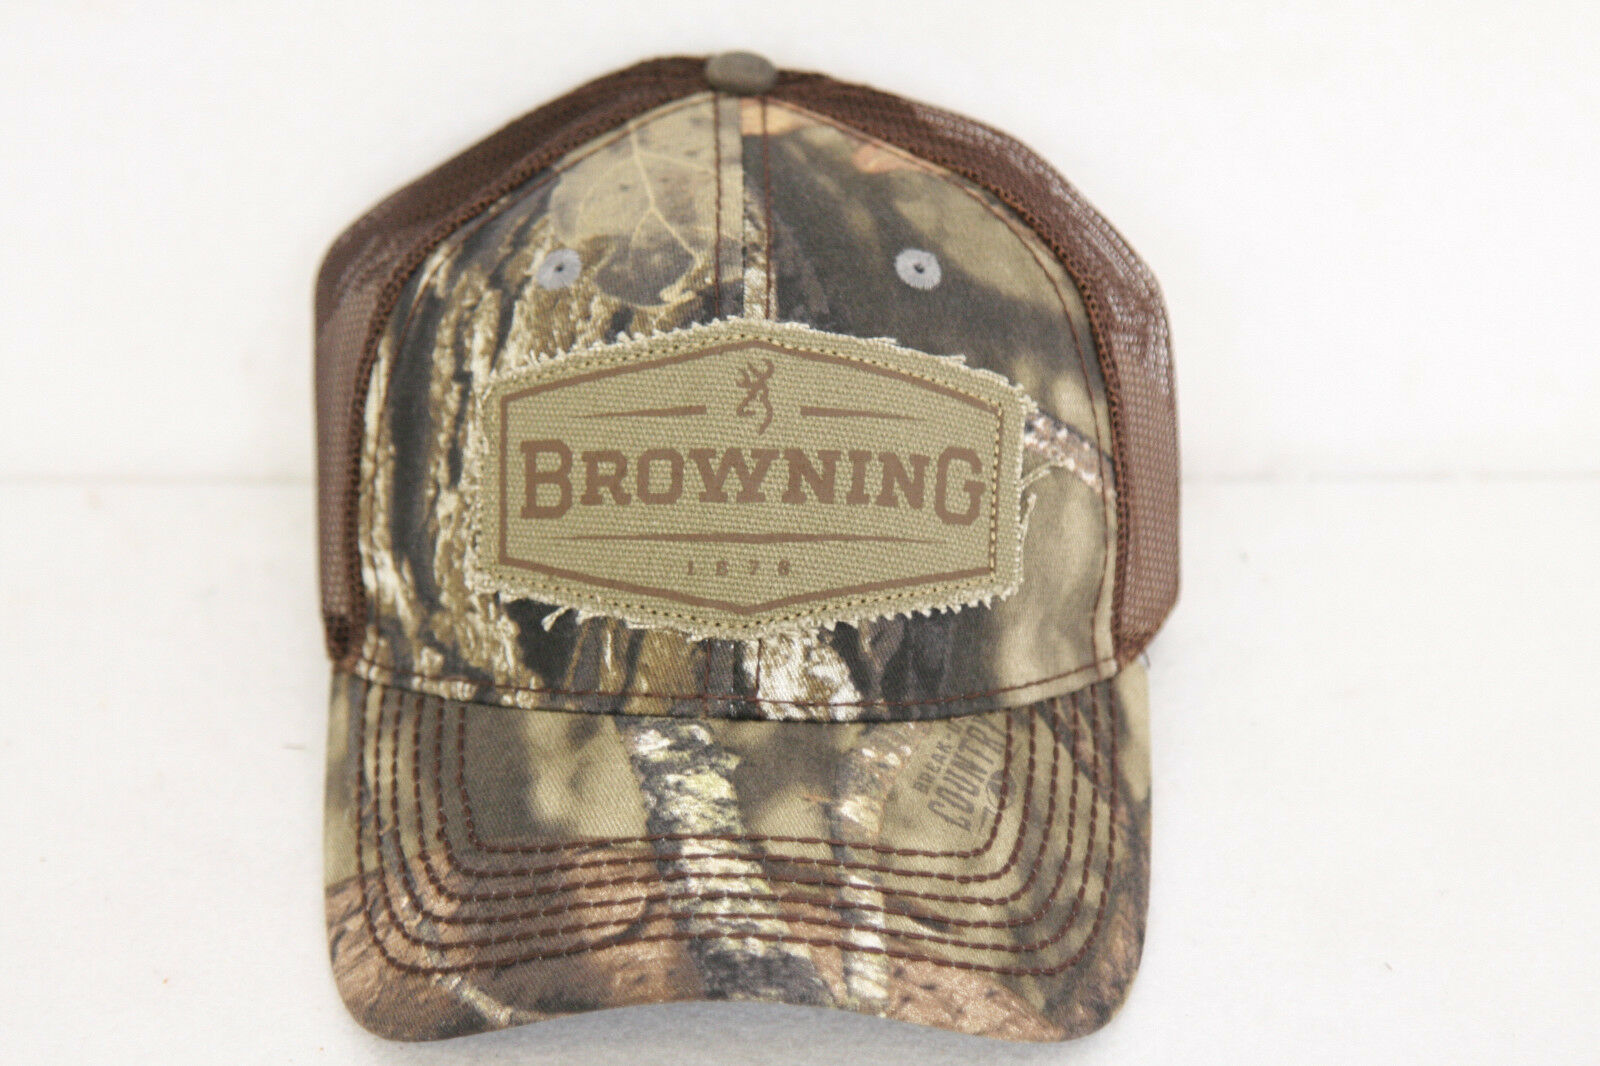 dcfeaf0f305 Browning Atlus Trucker Cap Mossy Oak Break up Country for sale ...